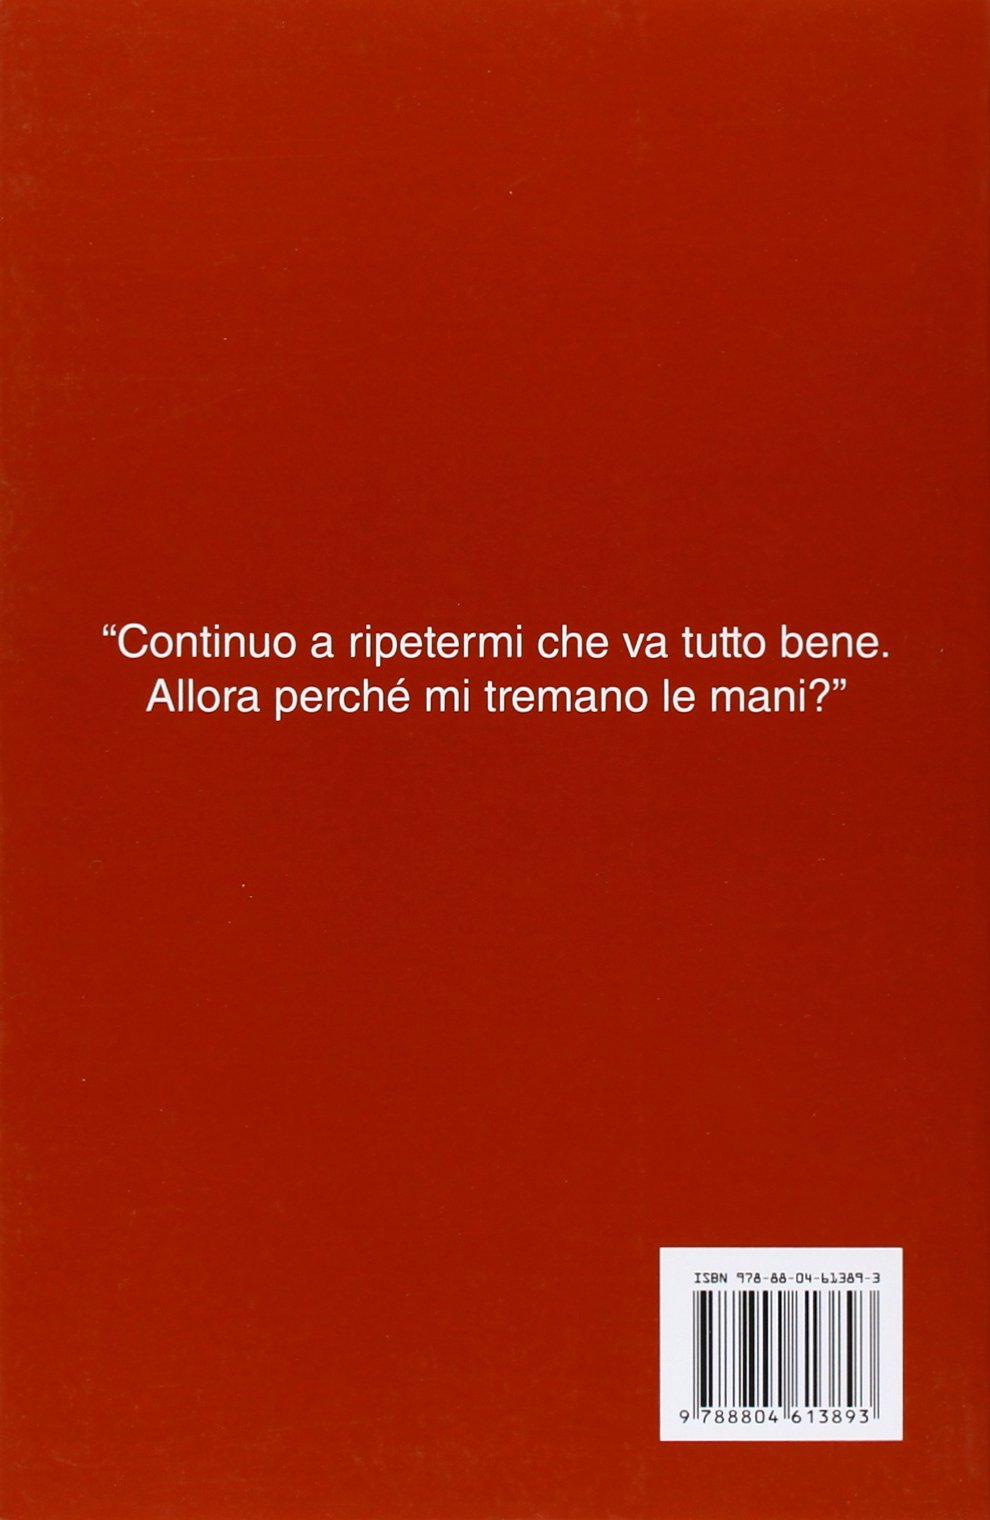 Le Prime Luci Del Mattino: Fabio Volo: 9788804613893: Amazon: Books